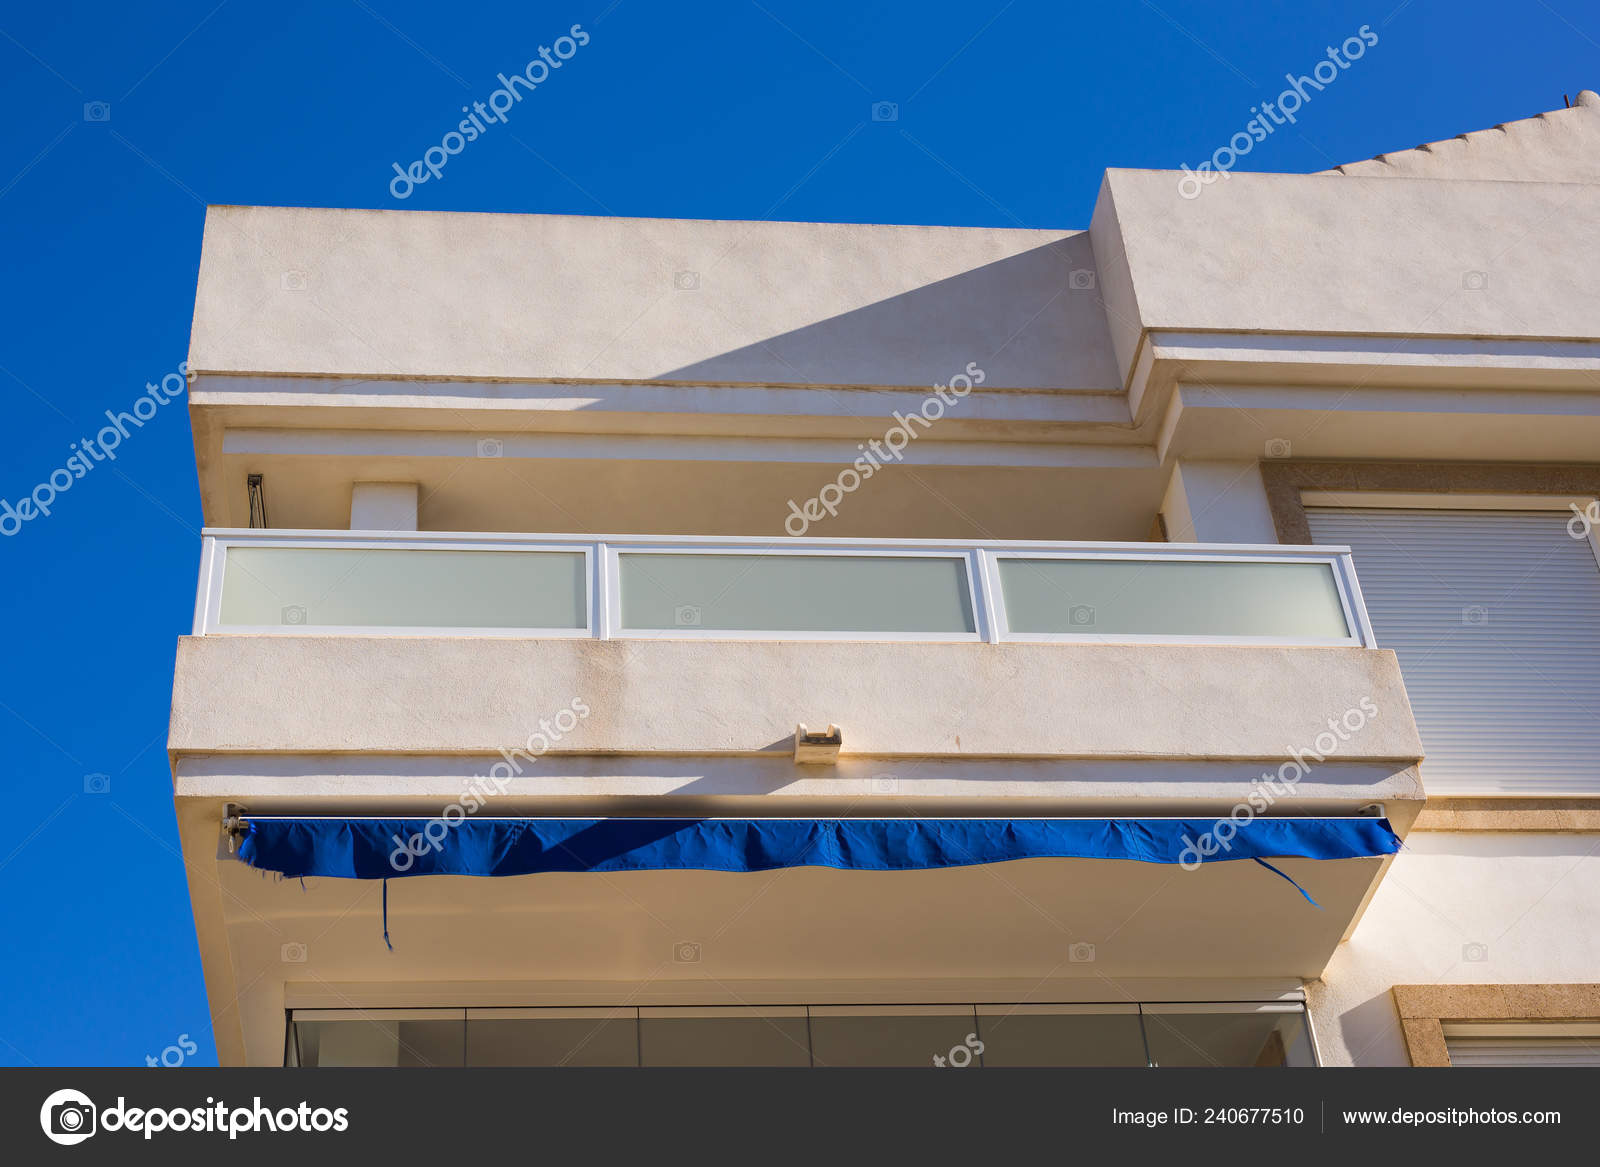 Design Architecture And Exterior Concept Modern Balconies Stock Photo C Satura 240677510